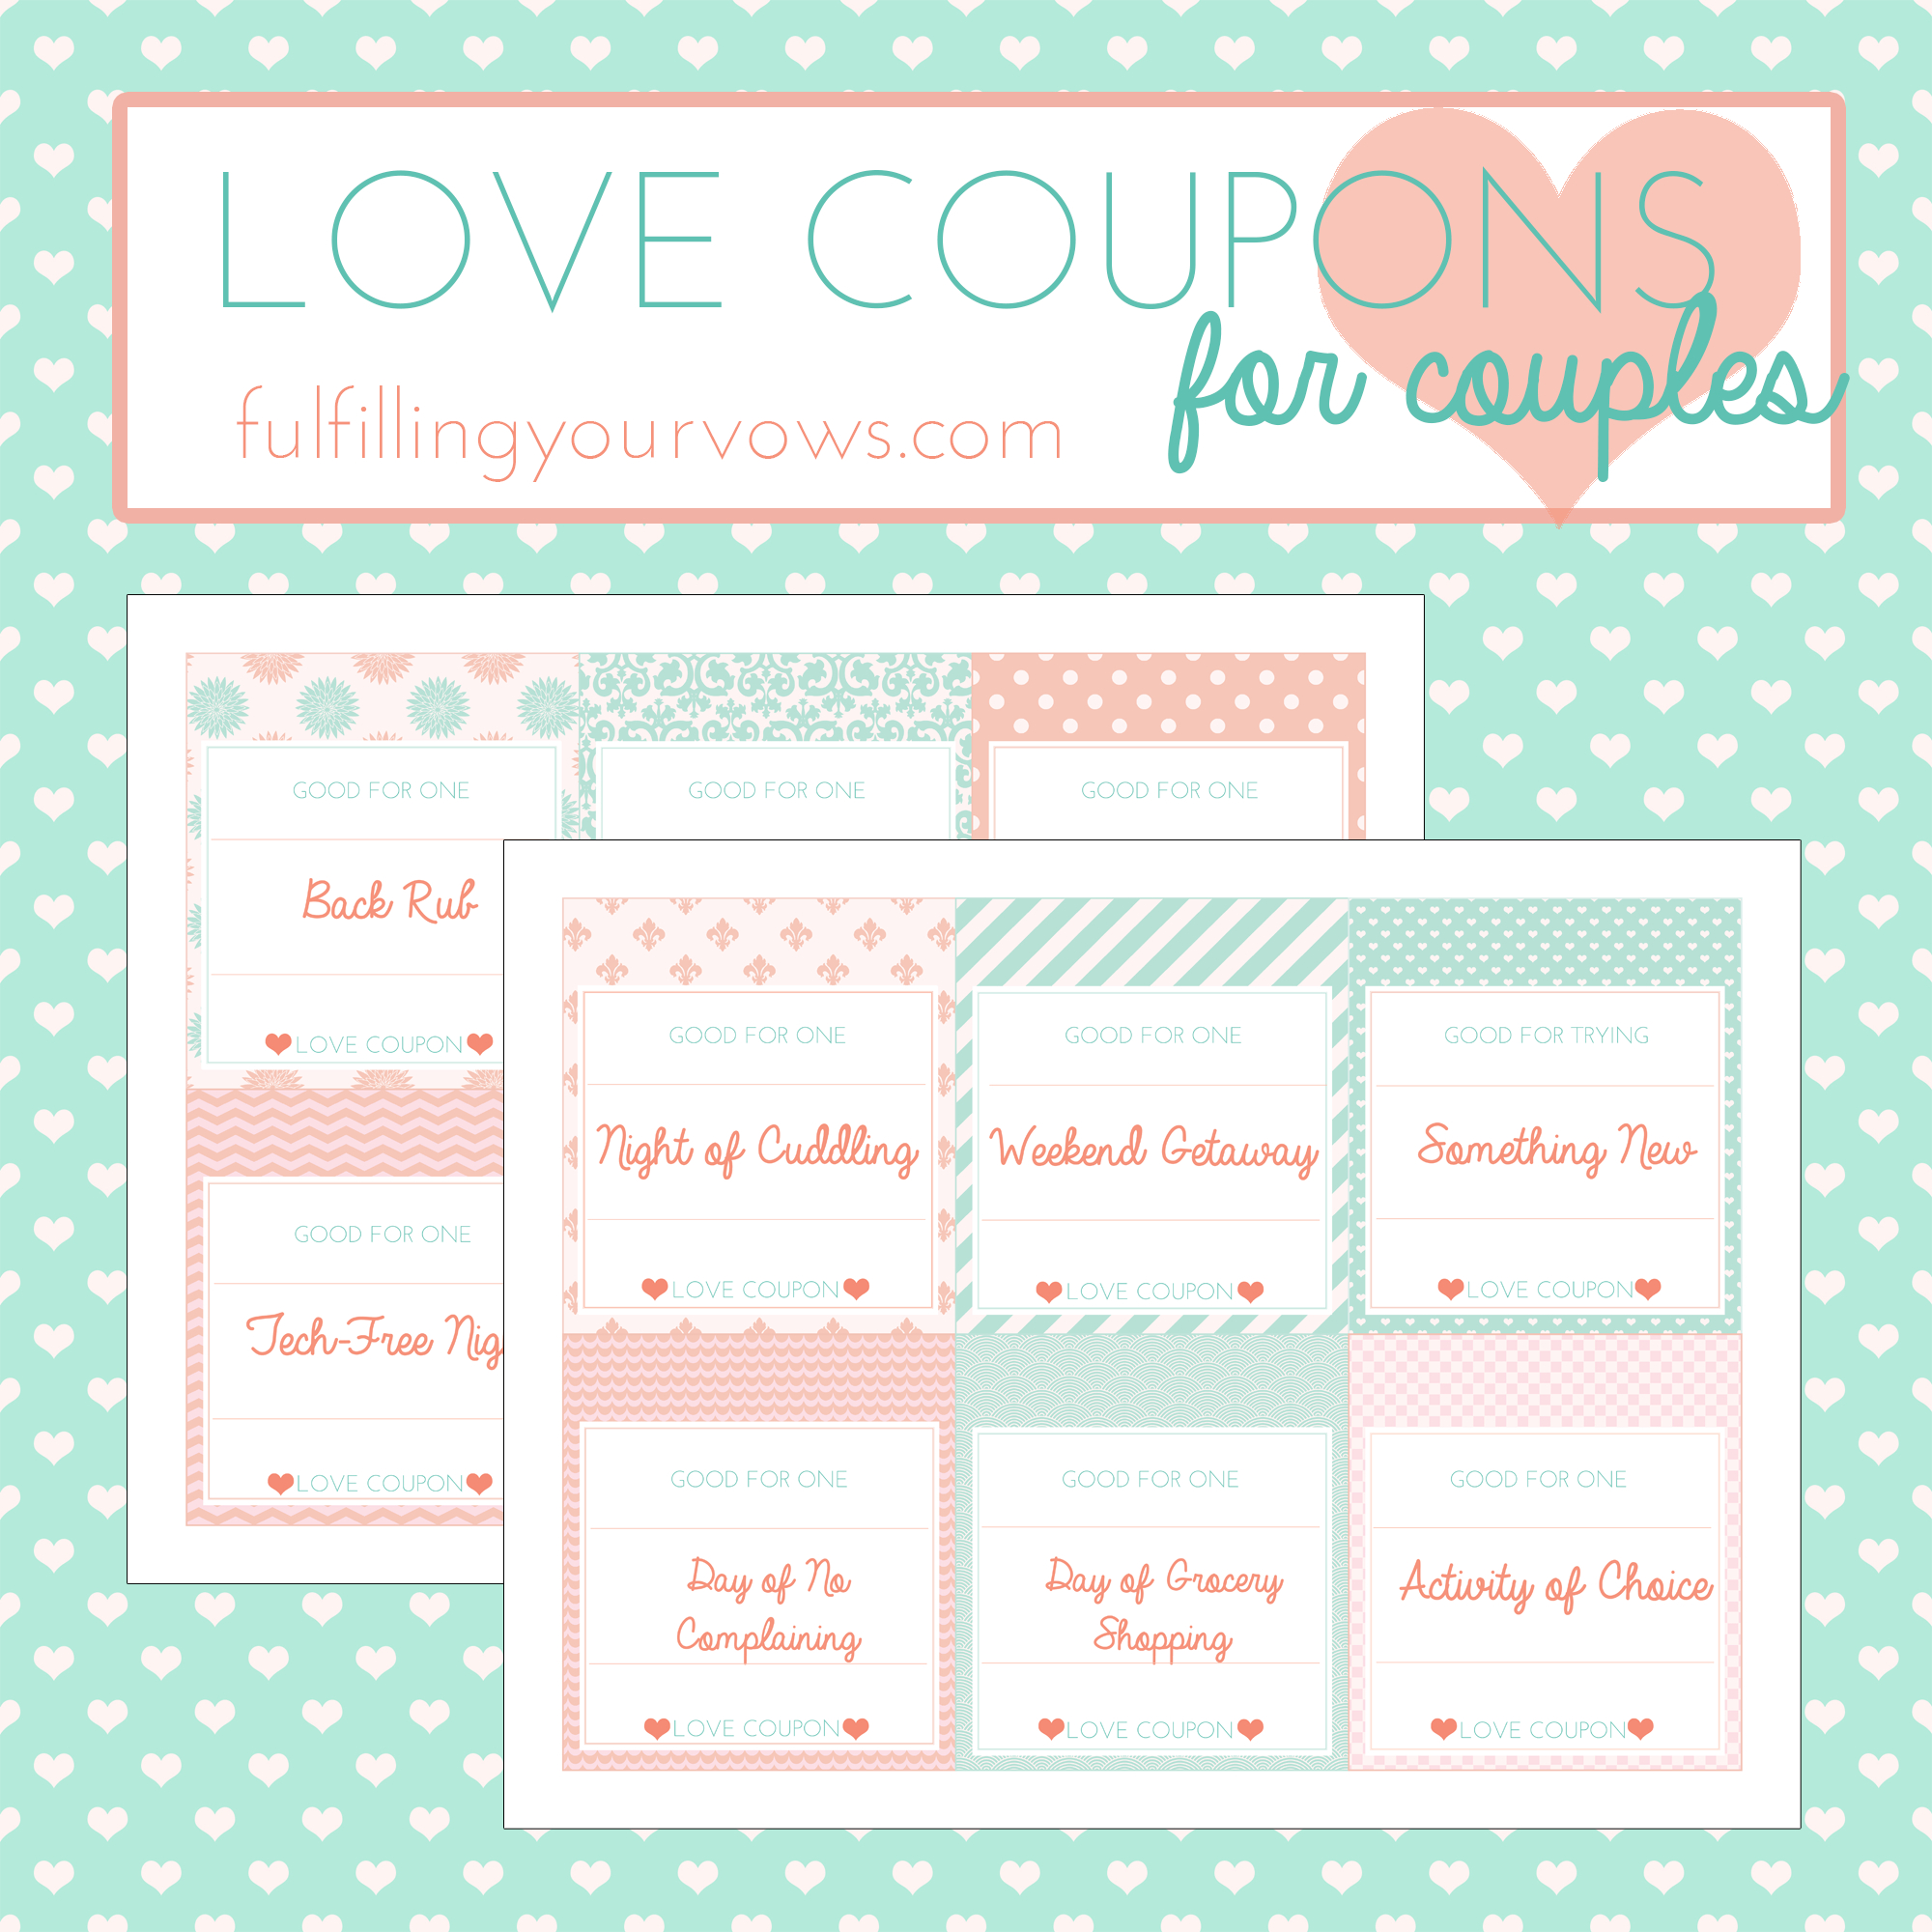 Free Printable Love Coupons For Couples - Fulfilling Your Vows - Free Printable Coupons For Husband